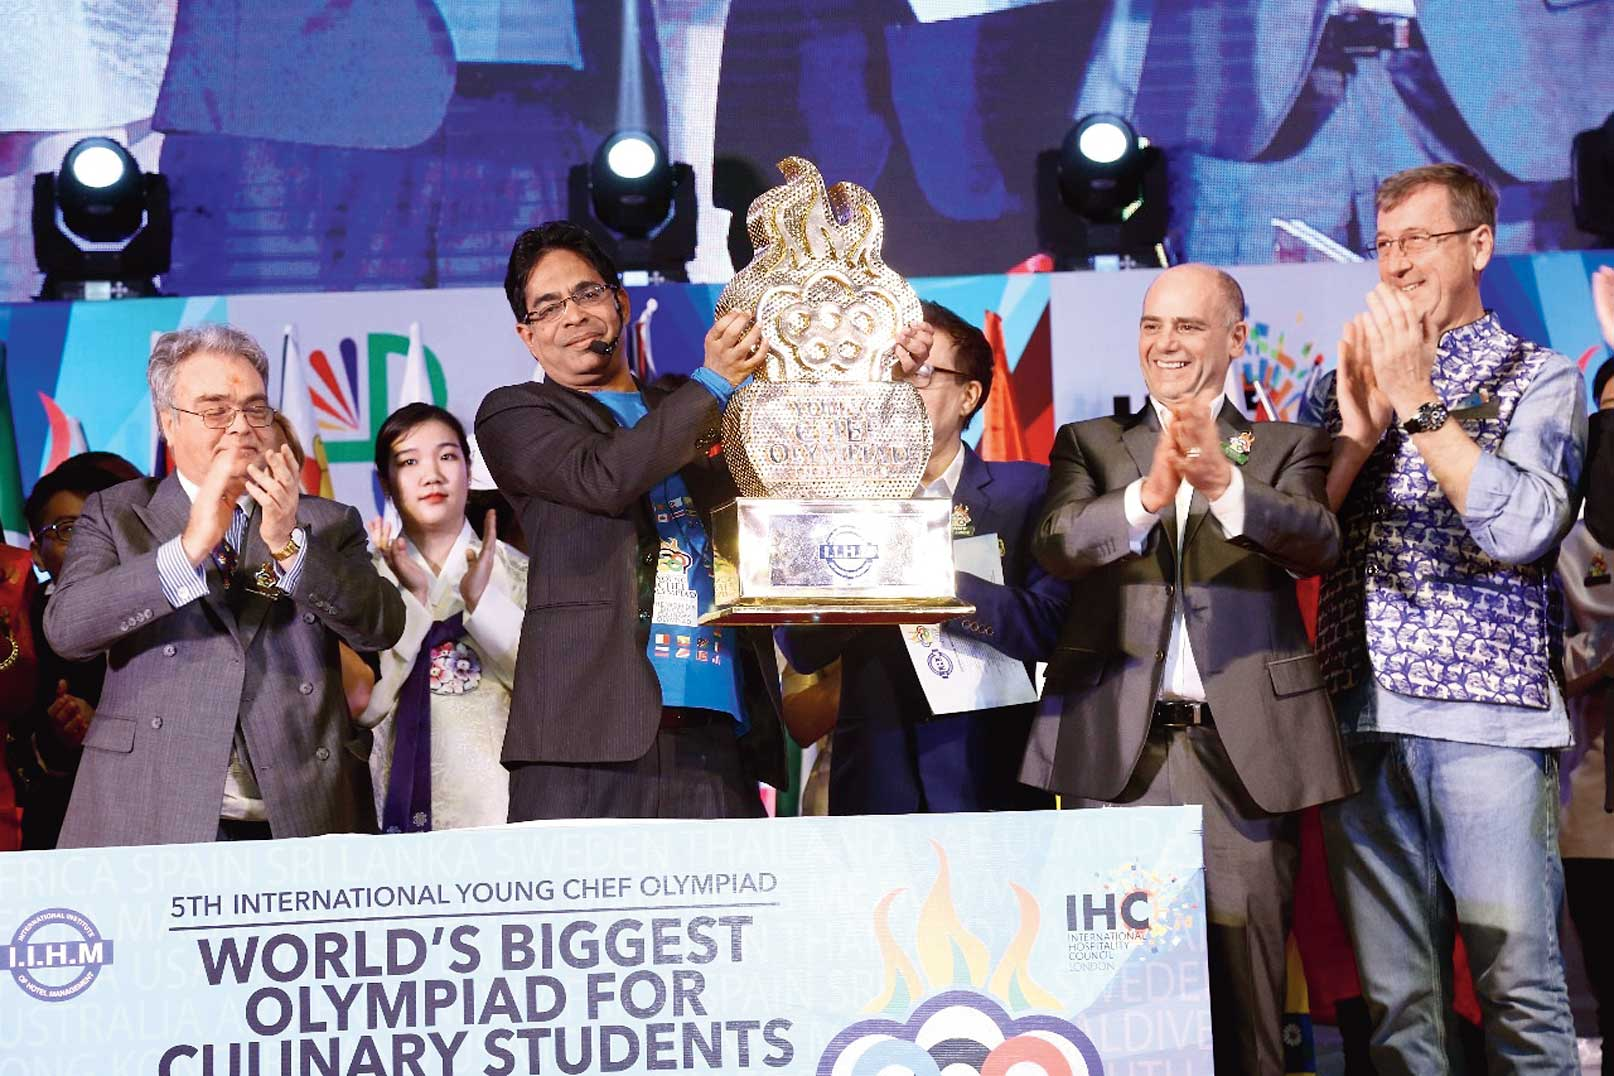 Suborno Bose unveils the IIHM YCO trophy that contestants from 50 countries will fight it out for